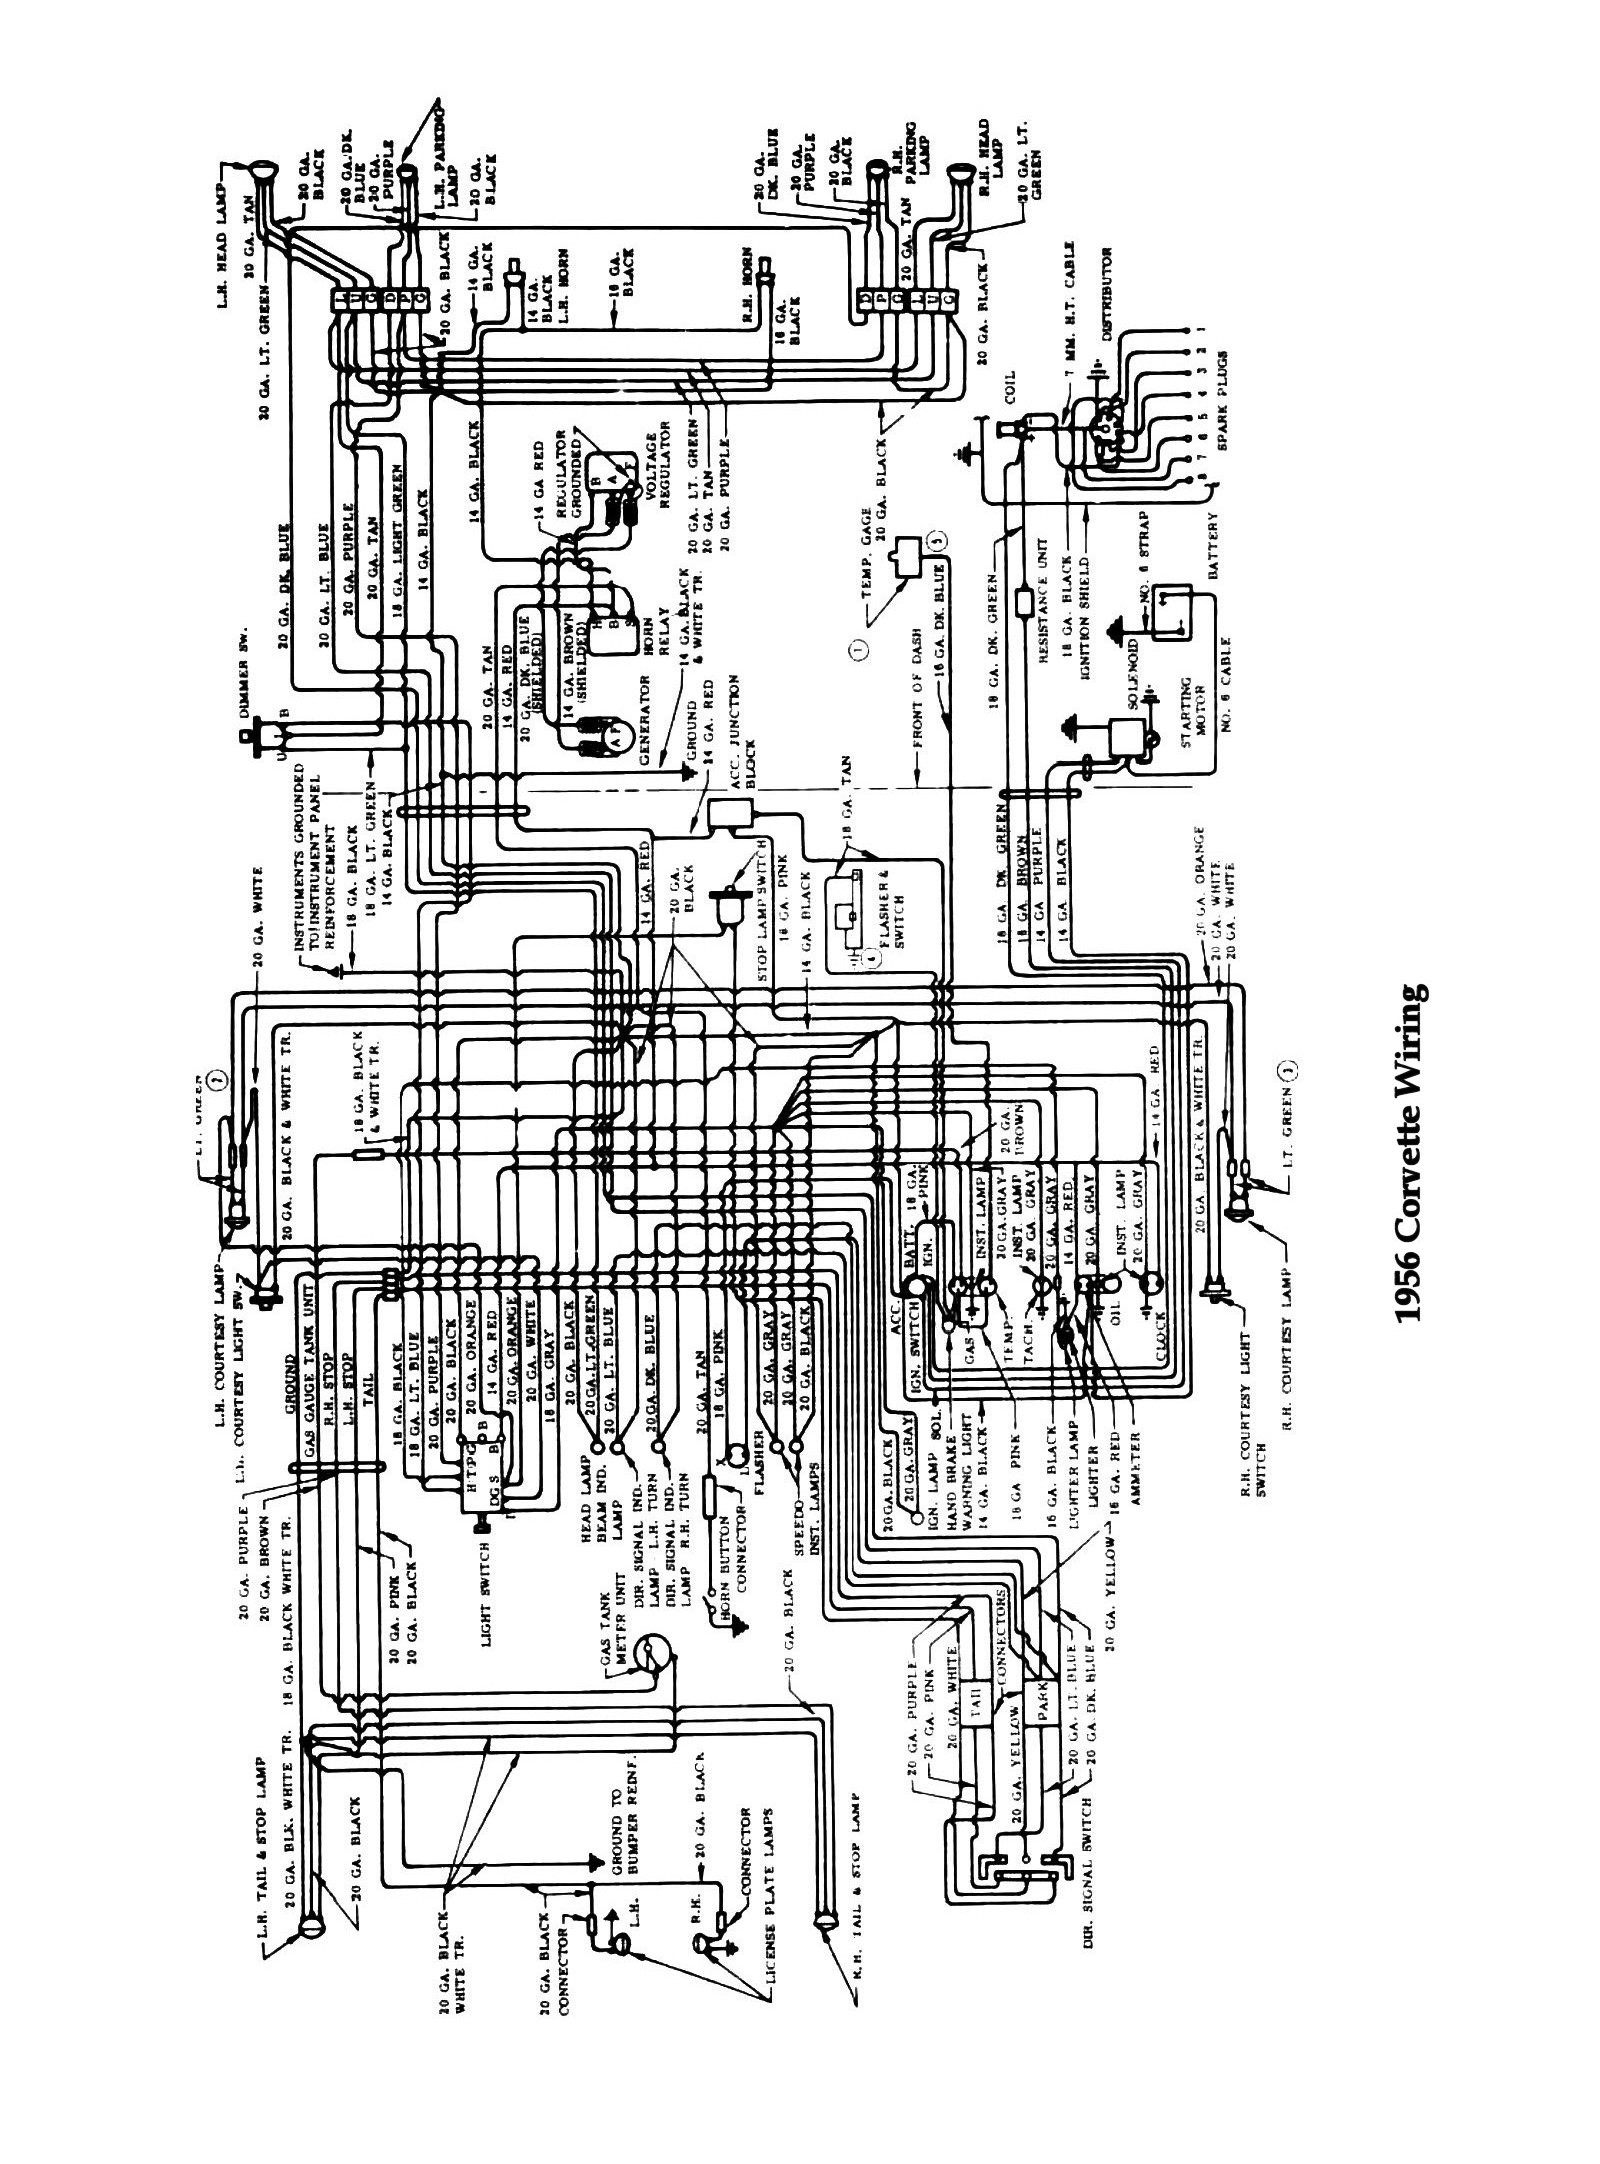 hight resolution of 1960 corvette wiring diagram wiring diagrams schema chevrolet 1979 corvette fuse diagram 1960 corvette wiring diagram